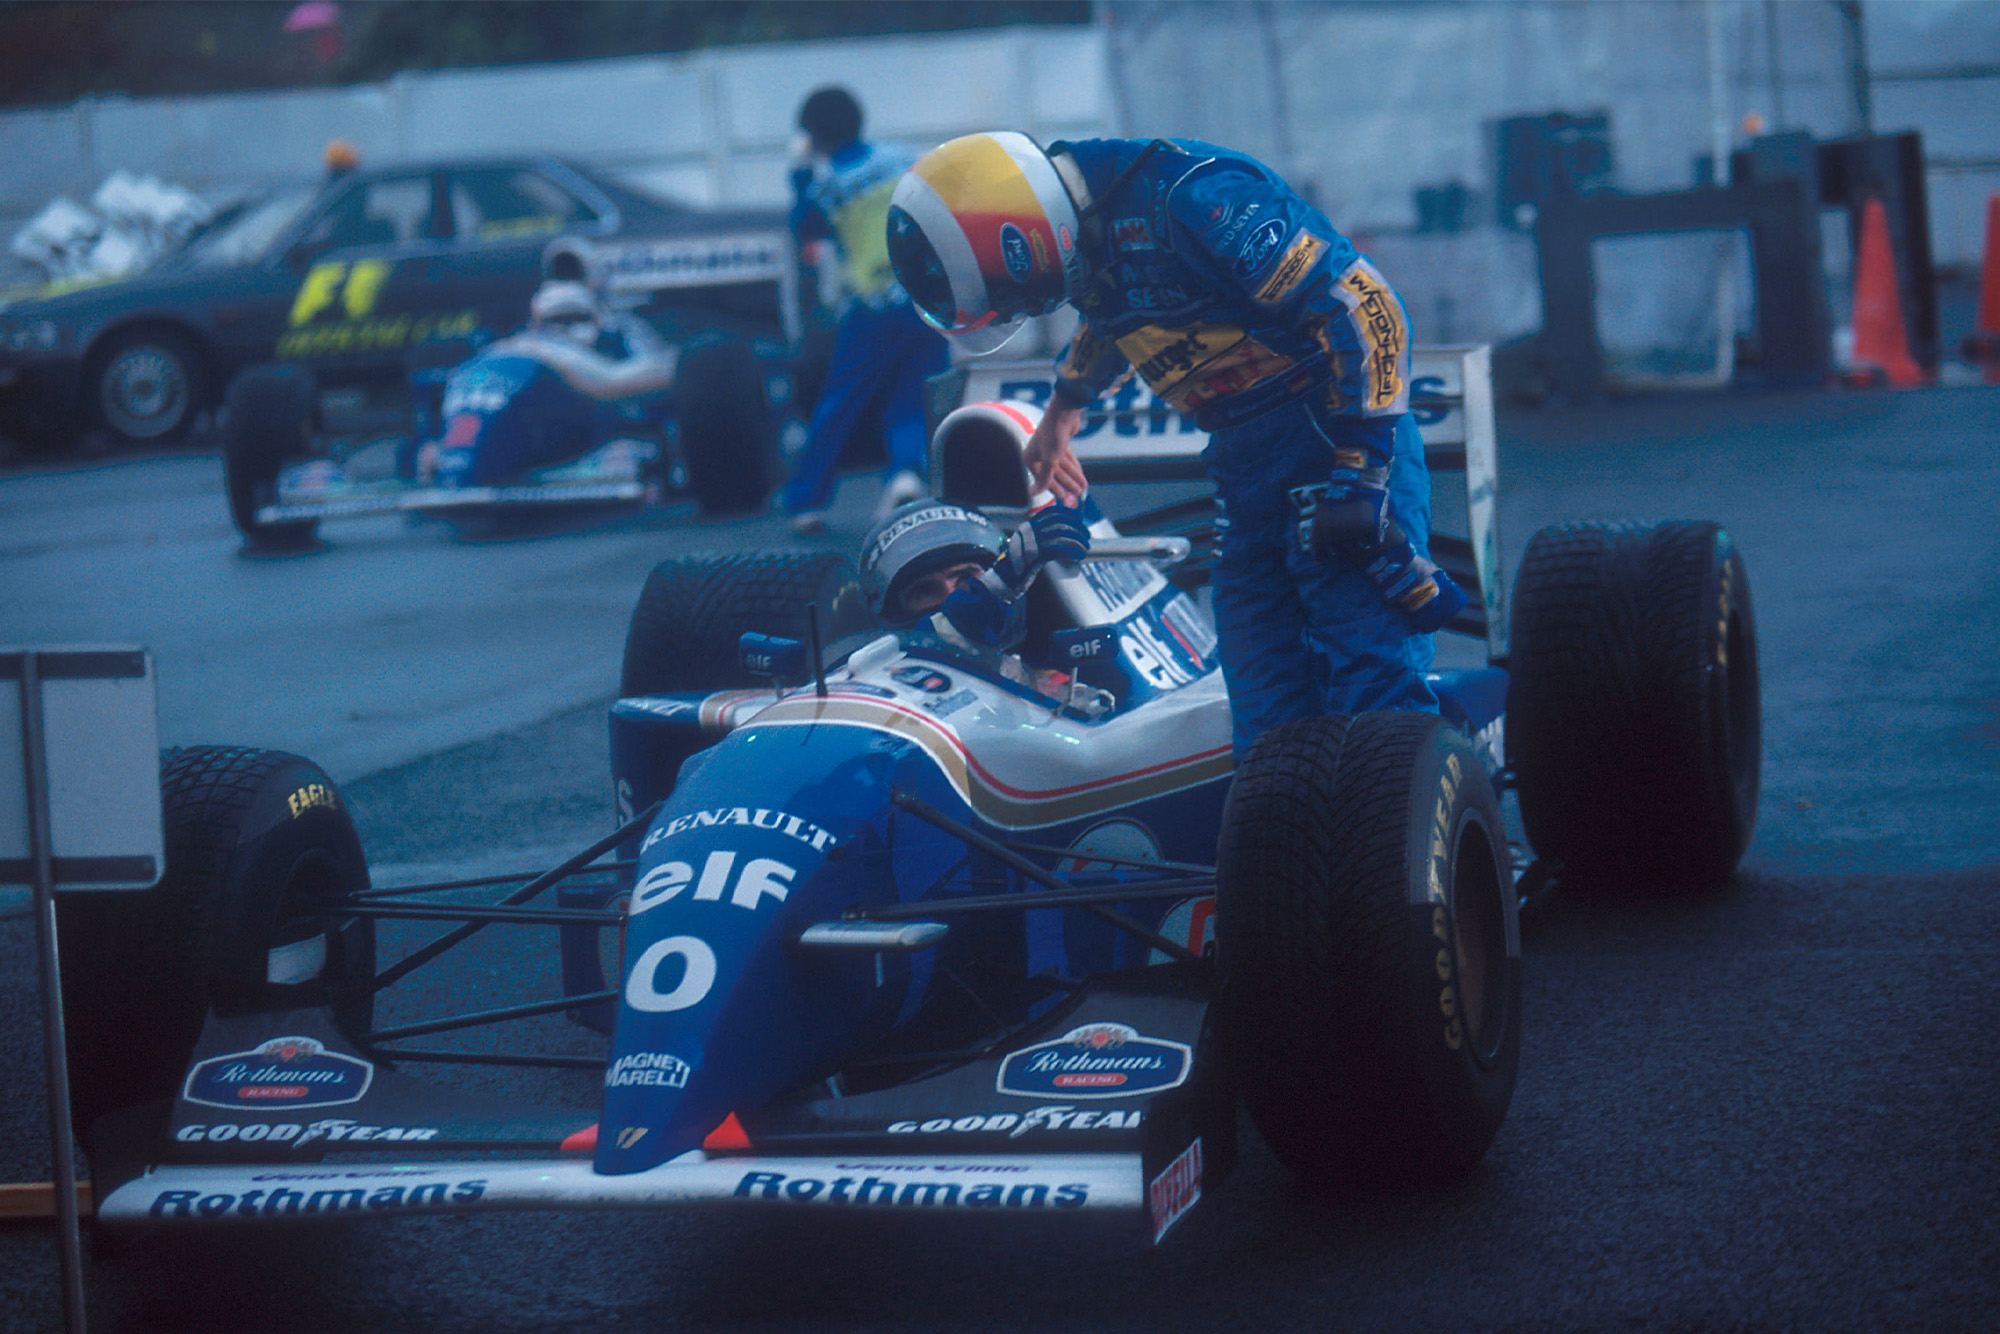 Michael Schumacher congratulates Damon Hill after the 1994 Japanese Grand Prix